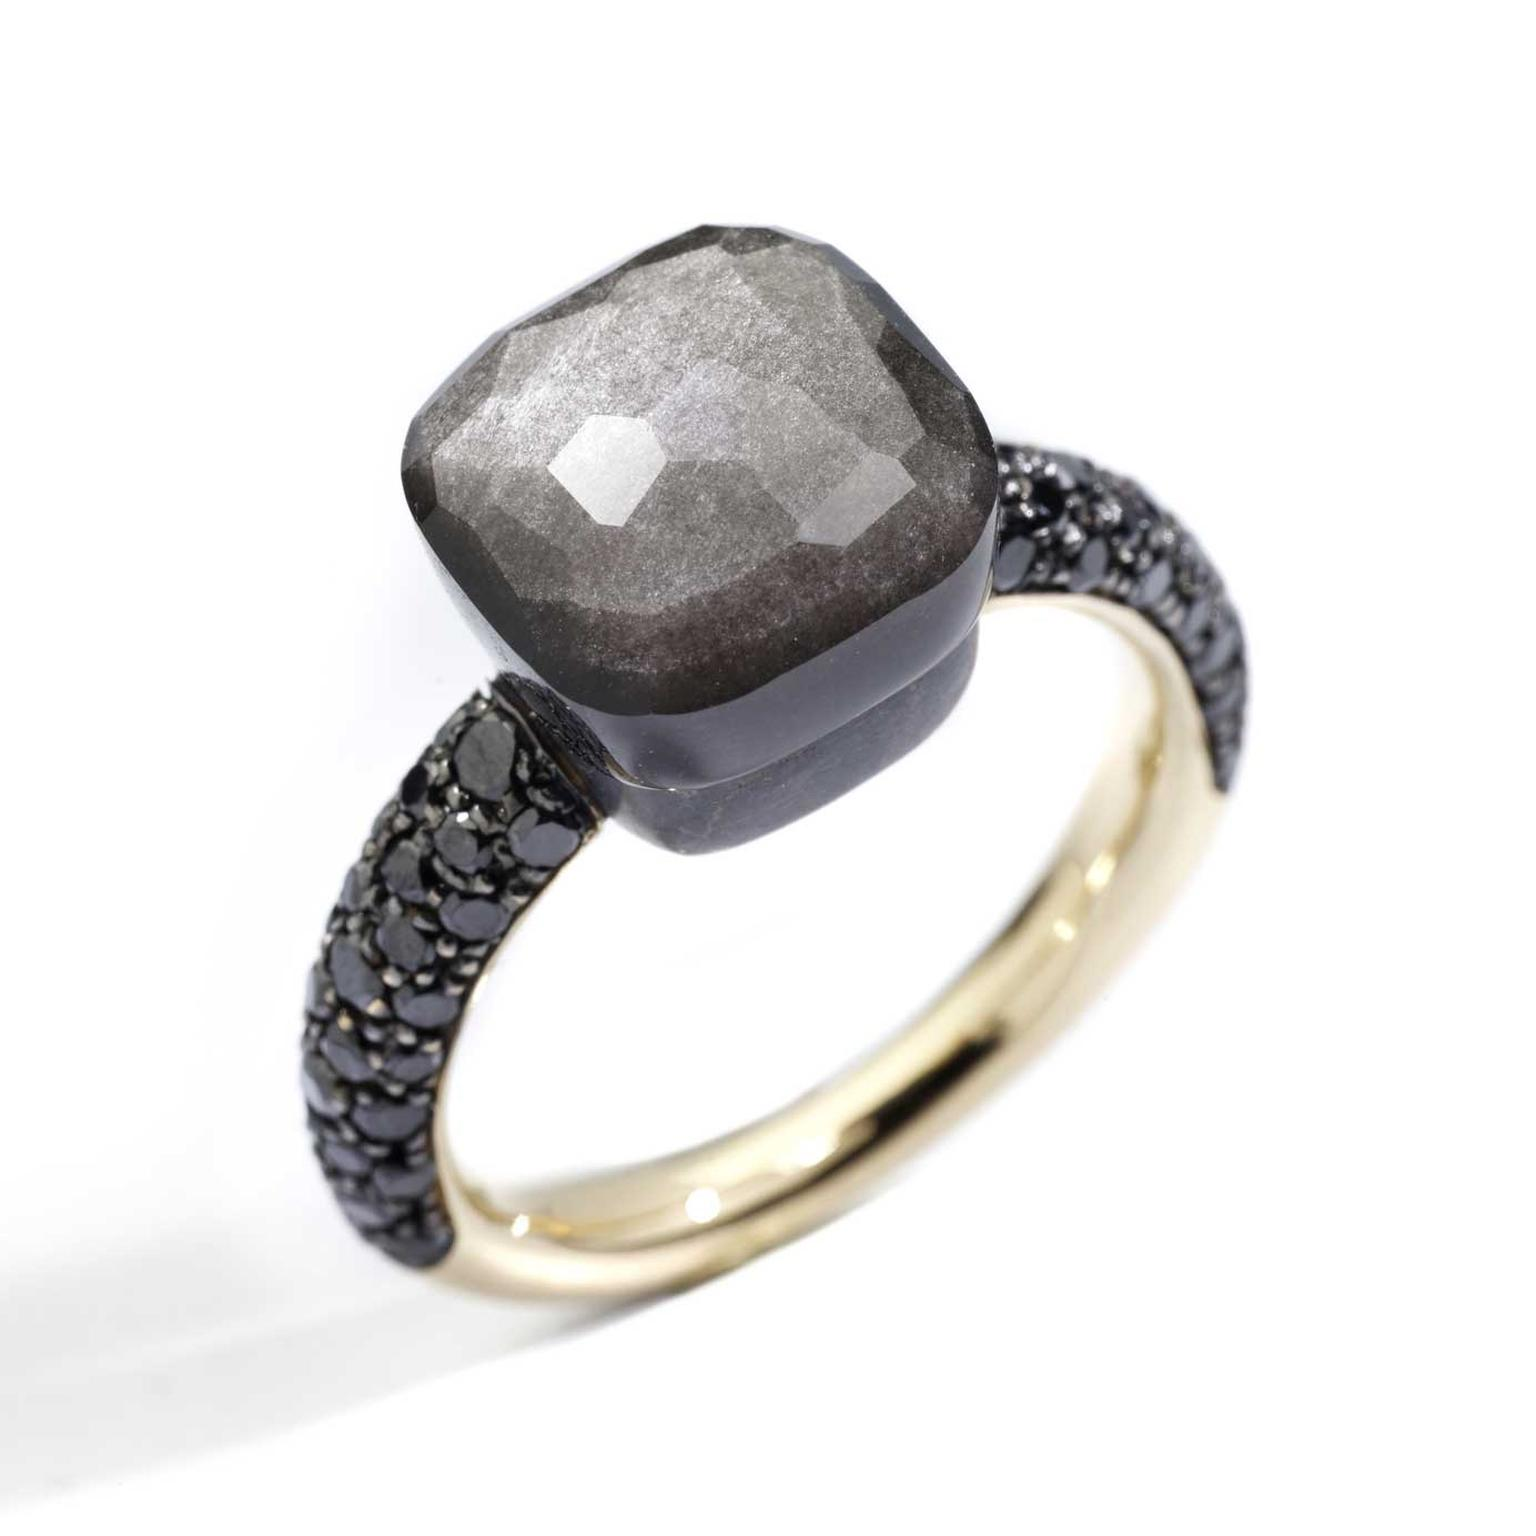 Nudo Classic ring with obsidian Pomellato